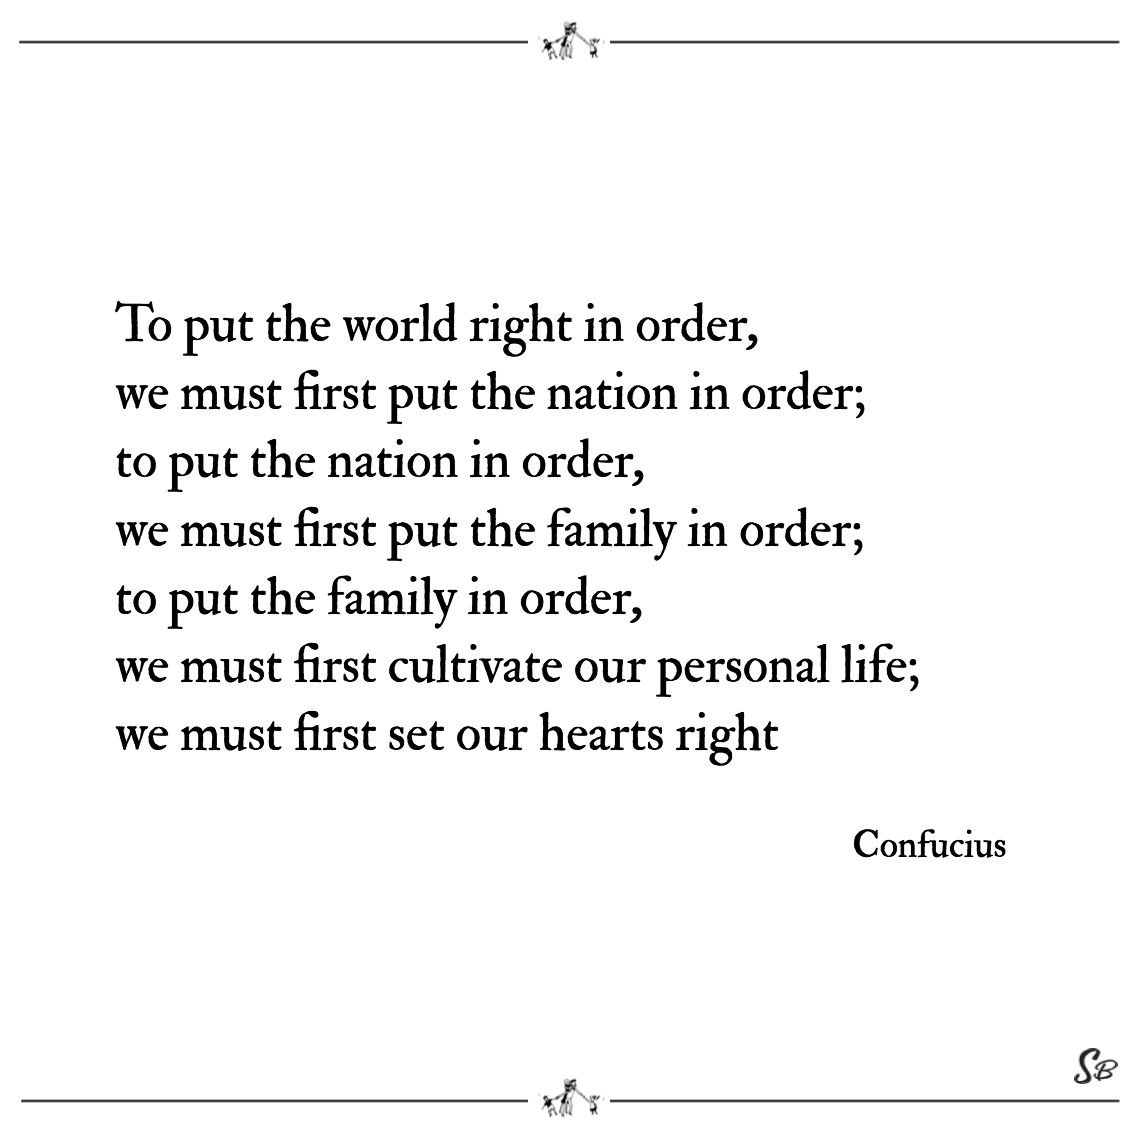 To put the world right in order, we must first put the nation in order to put the nation in order, we must first put the family in order; confucius